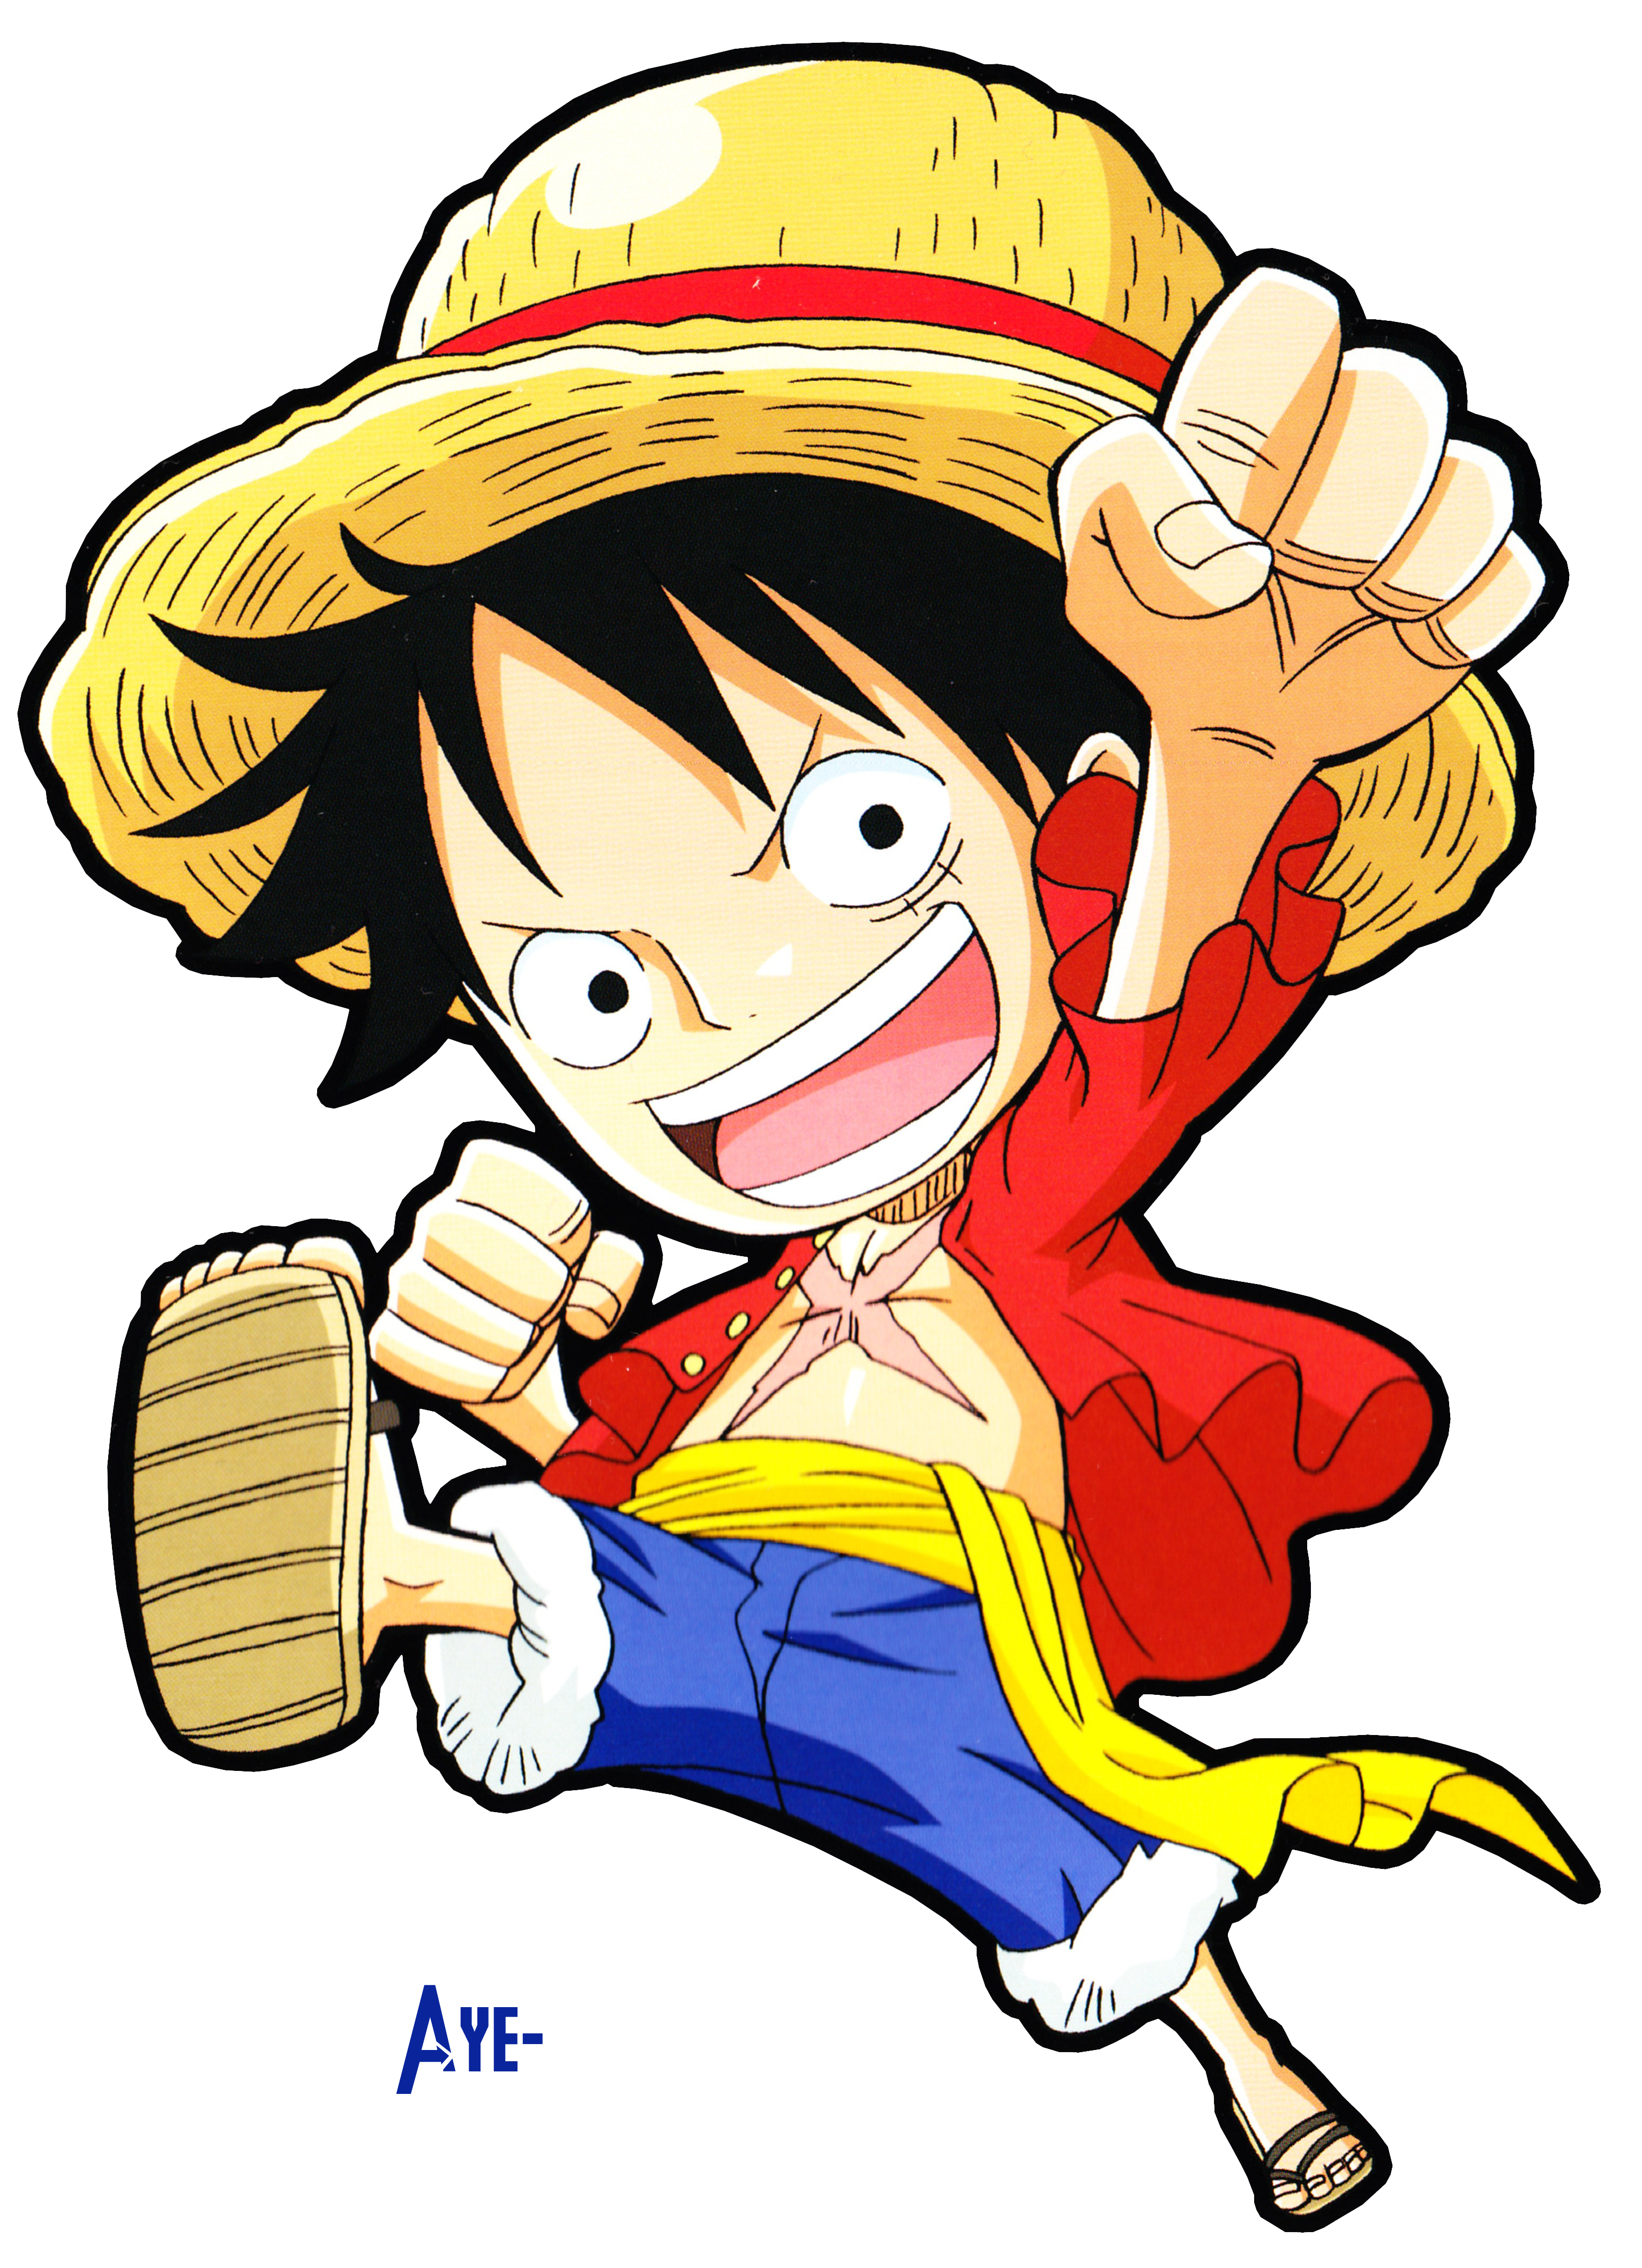 Ace And Luffy Chibi images